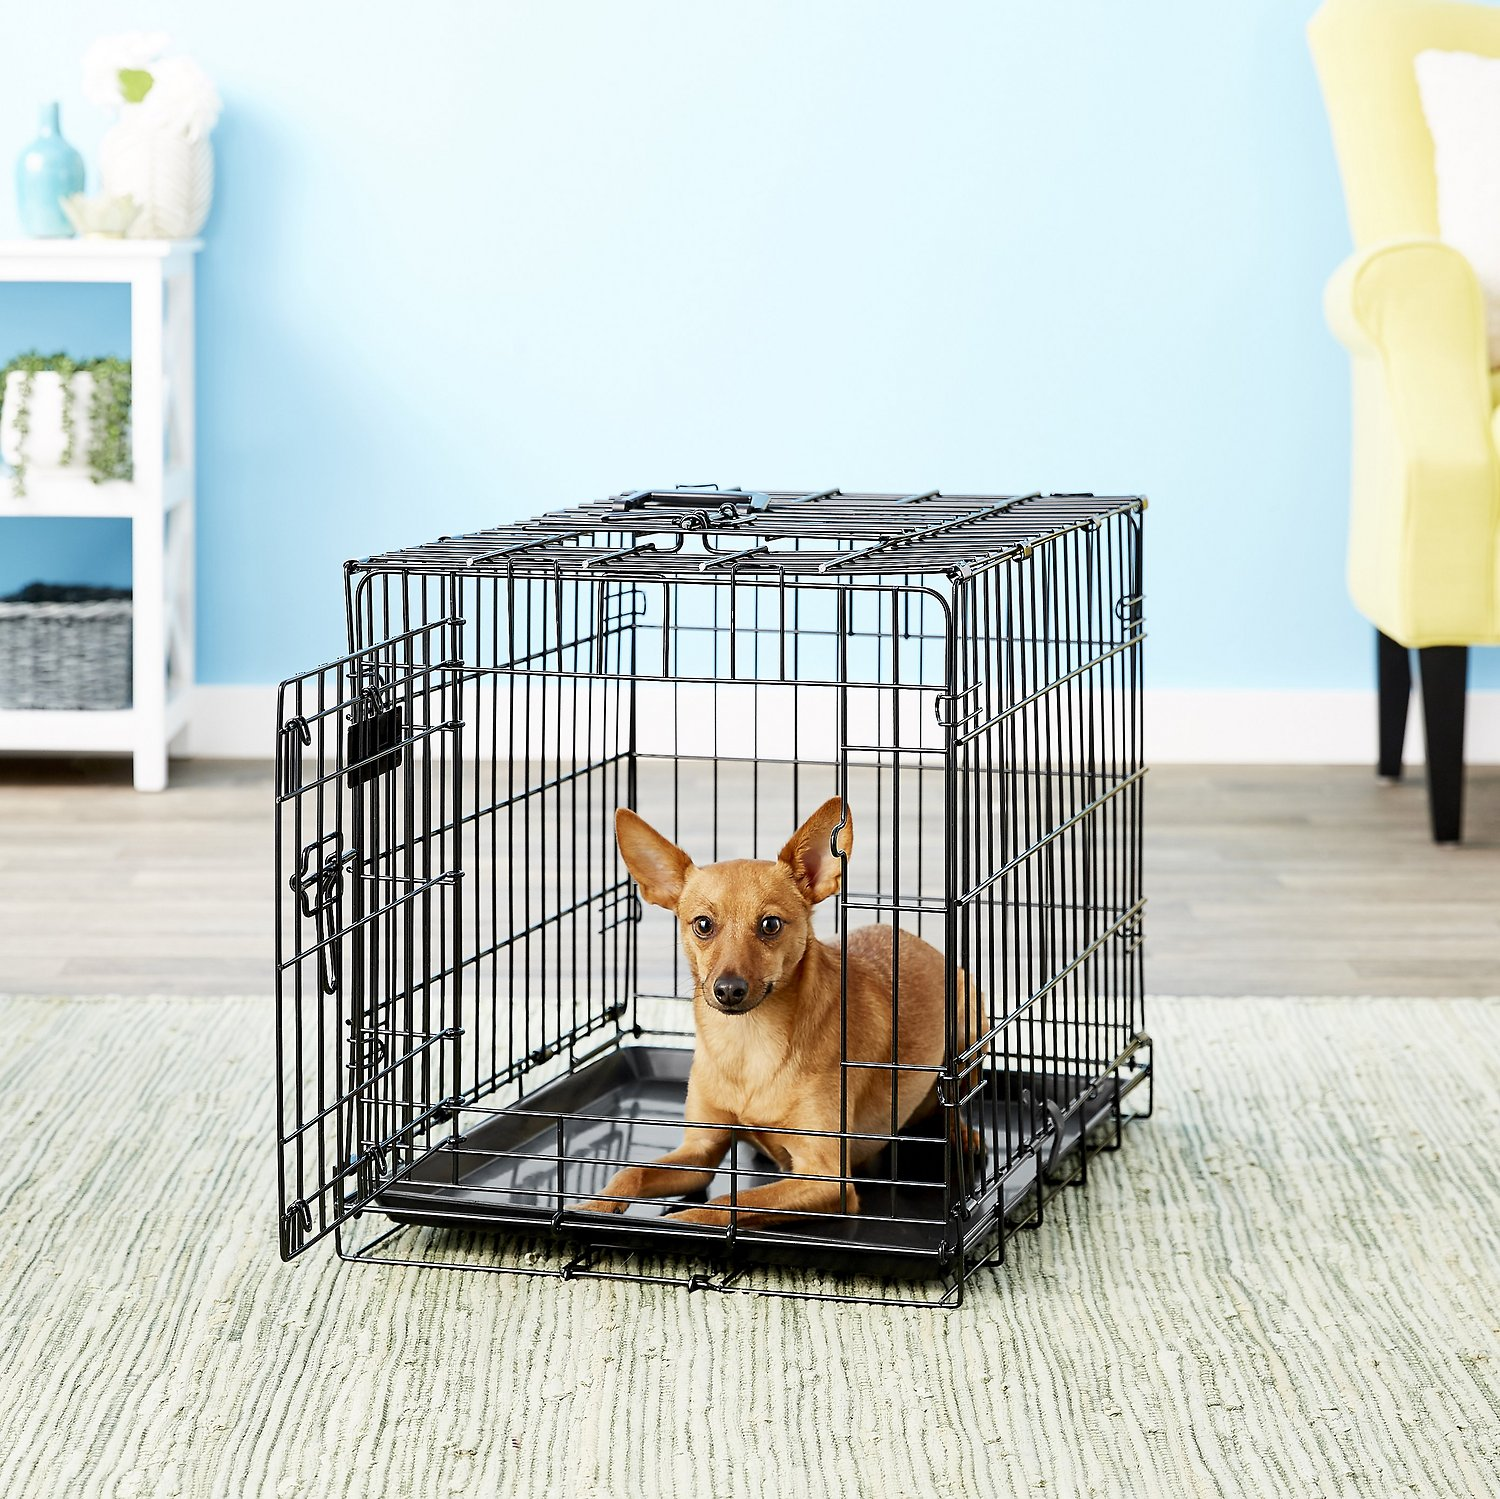 Precision pet products great crate double door dog crate for Double door with dog door